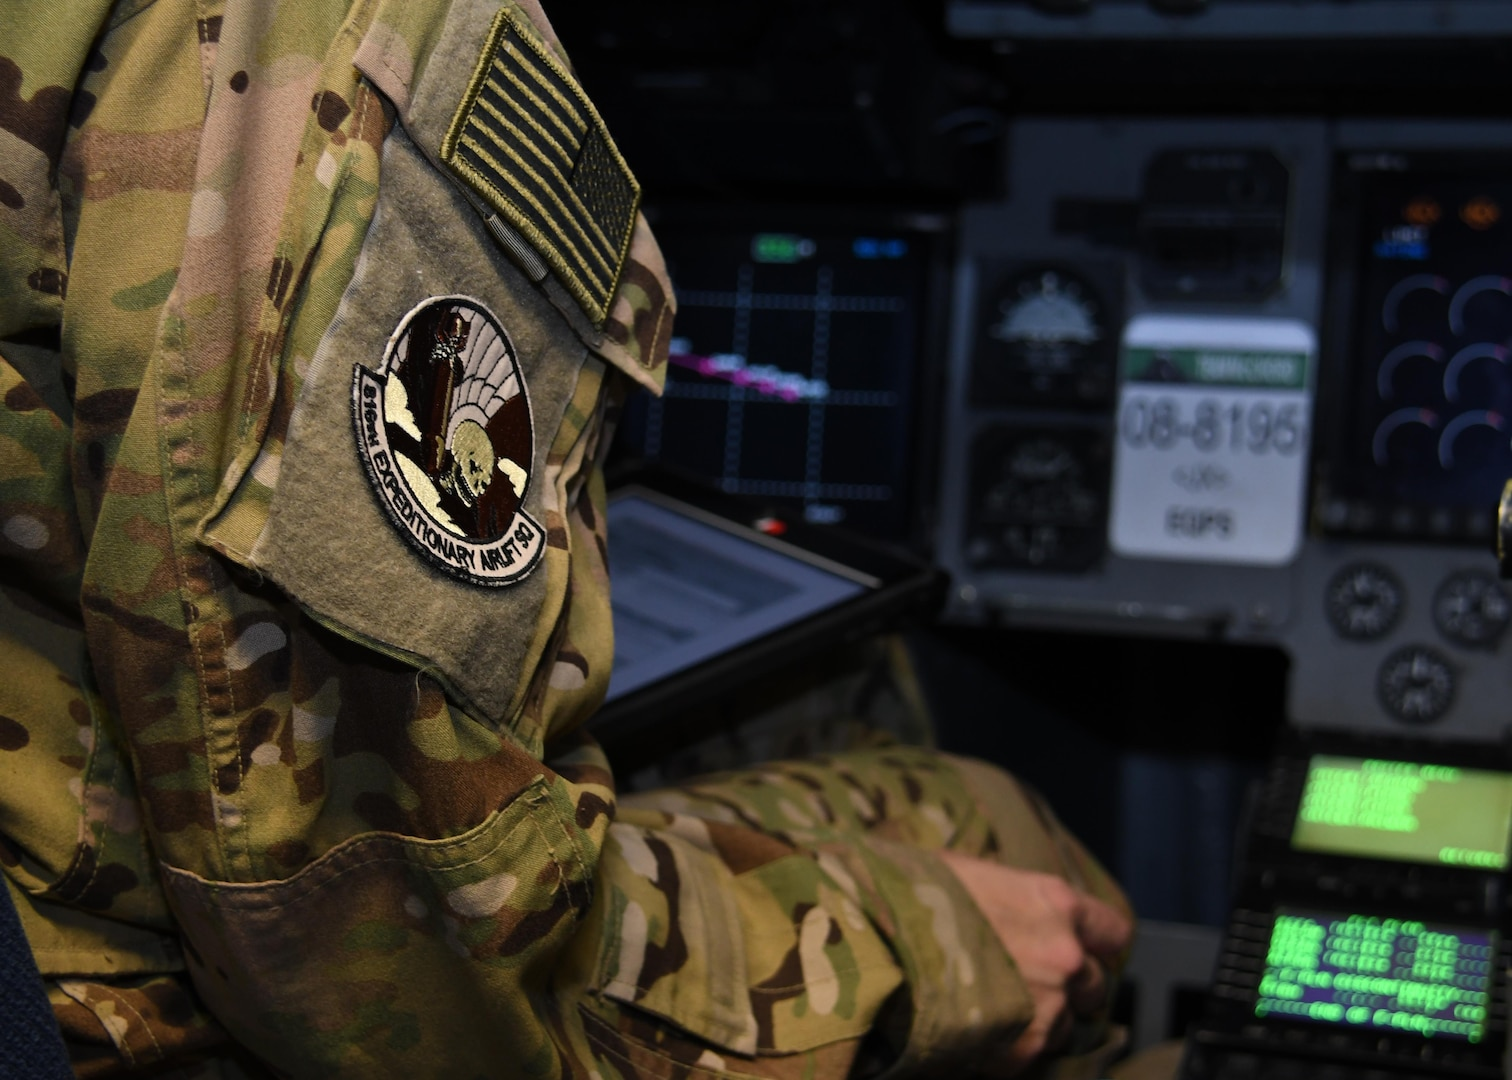 U.S. Air Force Capt. Brittany Bean, a pilot with the 816th Expeditionary Airlift Squadron, goes through preflight checks before taking off at Al Udeid Air Base, Qatar, Dec. 23, 2016. Bean pilots C-17 Globemaster III aircraft, which have the ability to rapidly project and sustain an effective combat force close to a potential combat area. (U.S. Air Force photo by Senior Airman Miles Wilson)